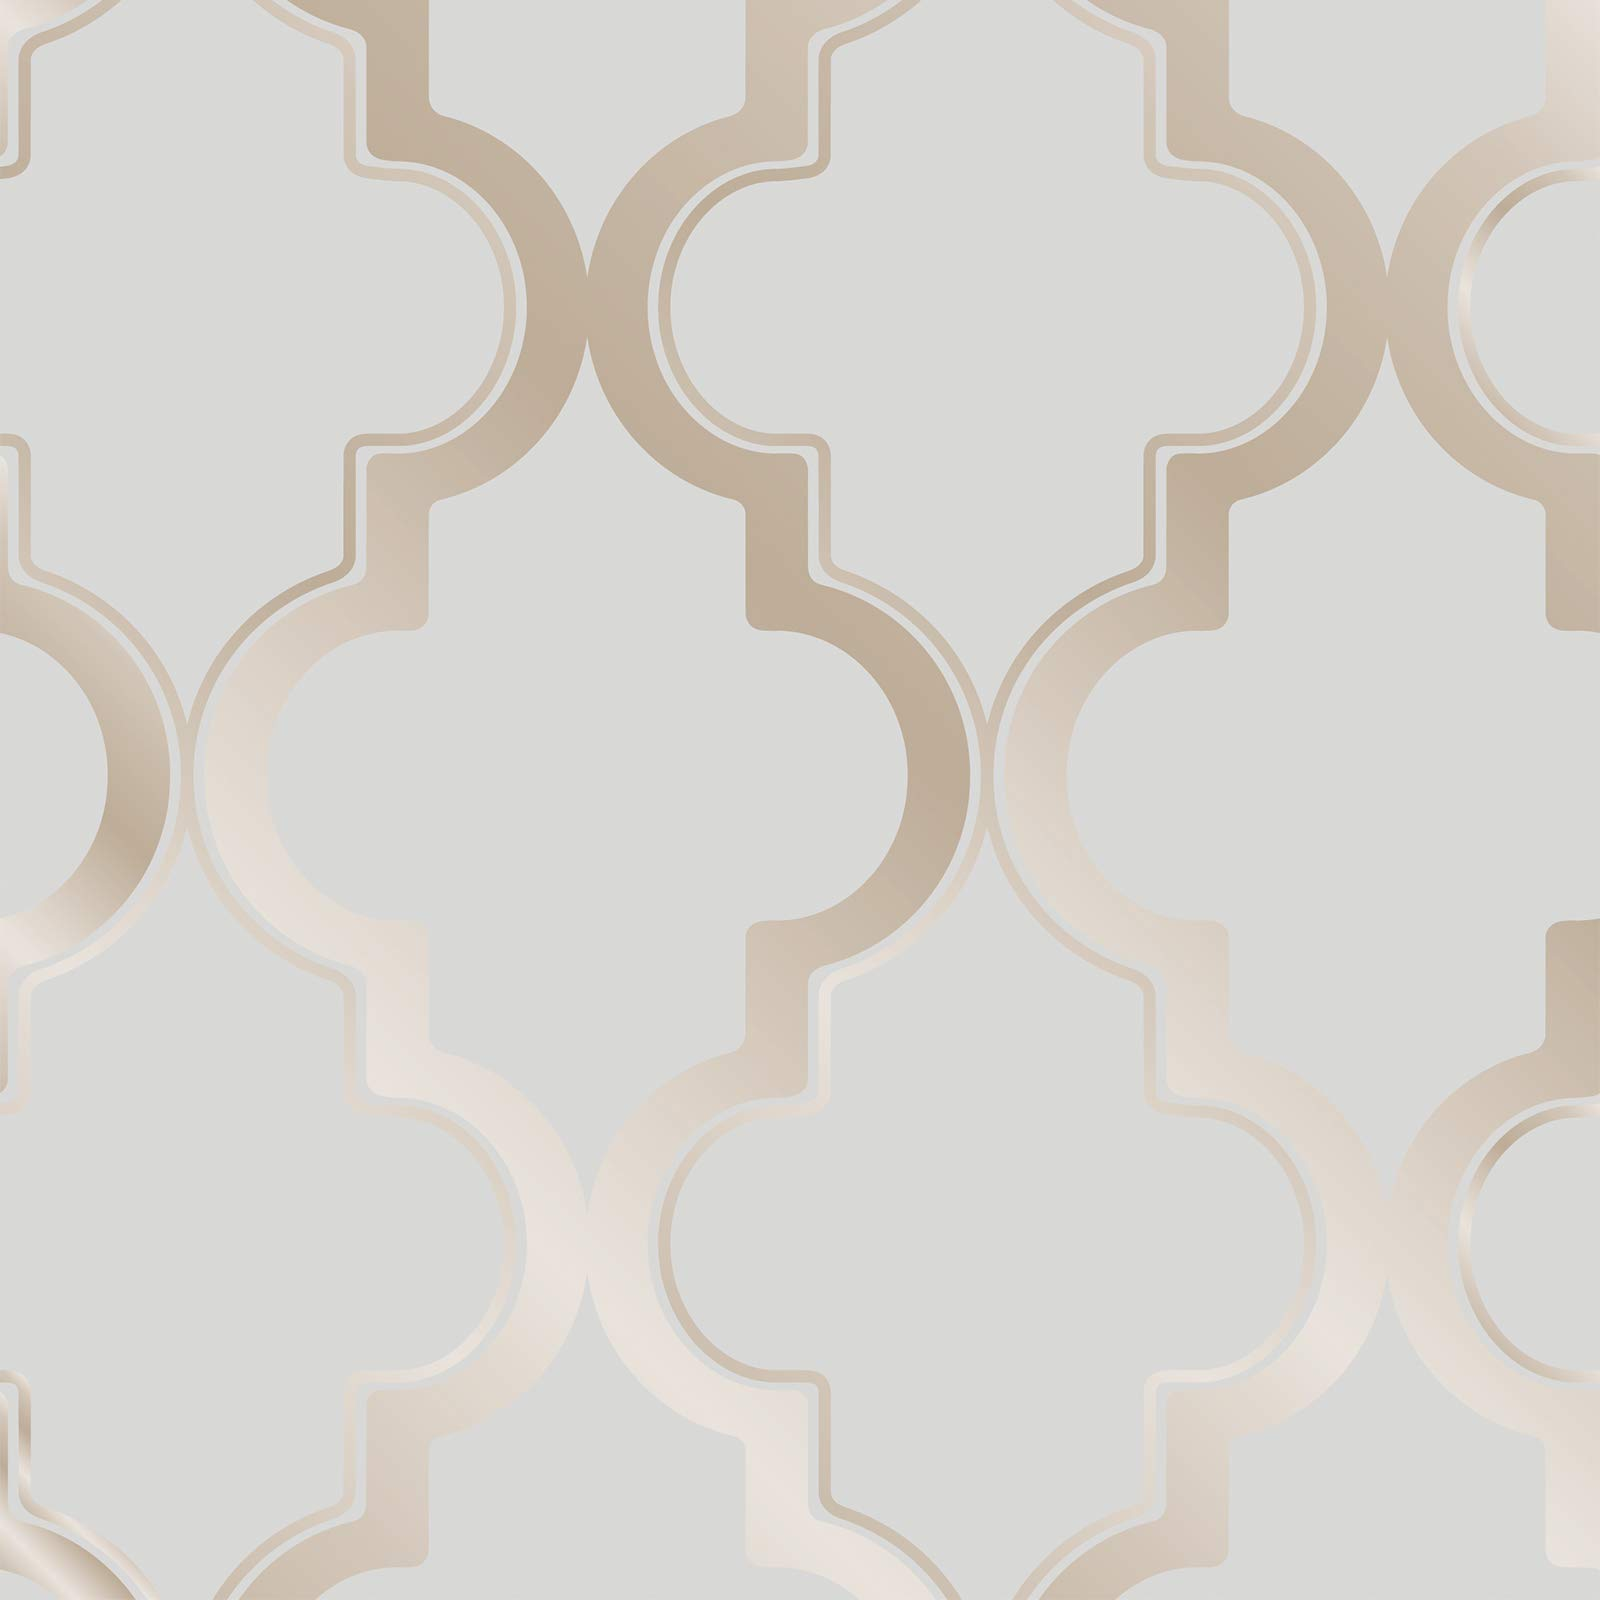 Tempaper Bronze Gray Marrakesh | Designer Removable Peel and Stick Wallpaper by Tempaper